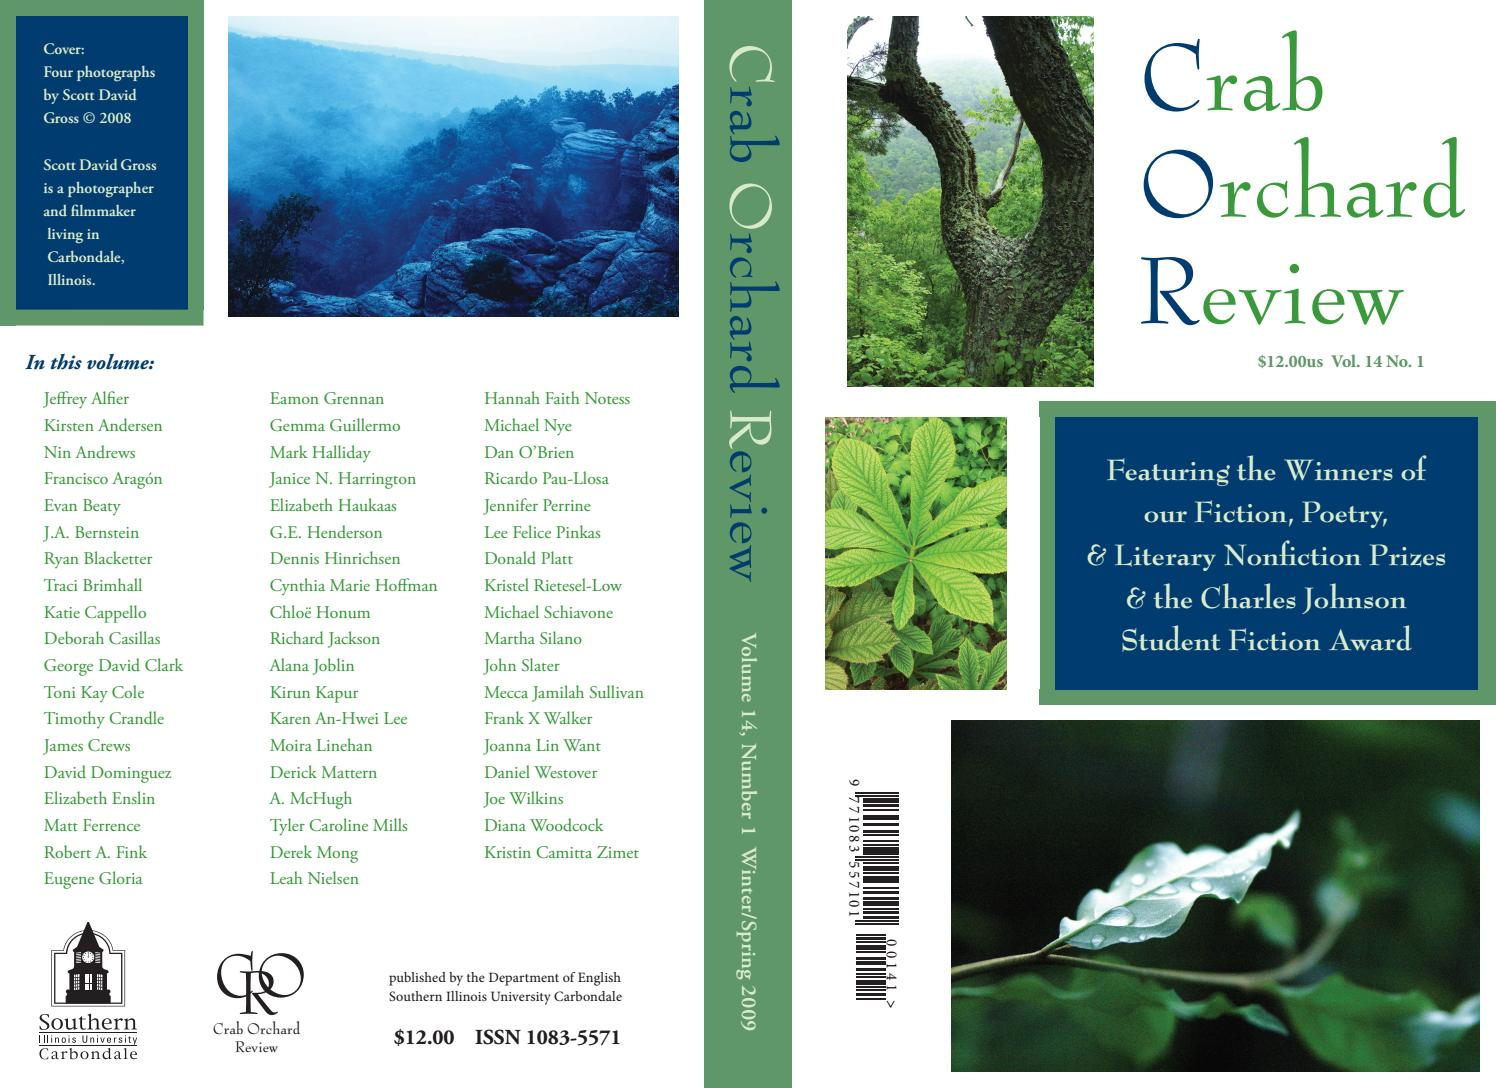 d2d05d462 Crab Orchard Review Vol 14 No 1 W/S 2009 by Crab Orchard Review - issuu